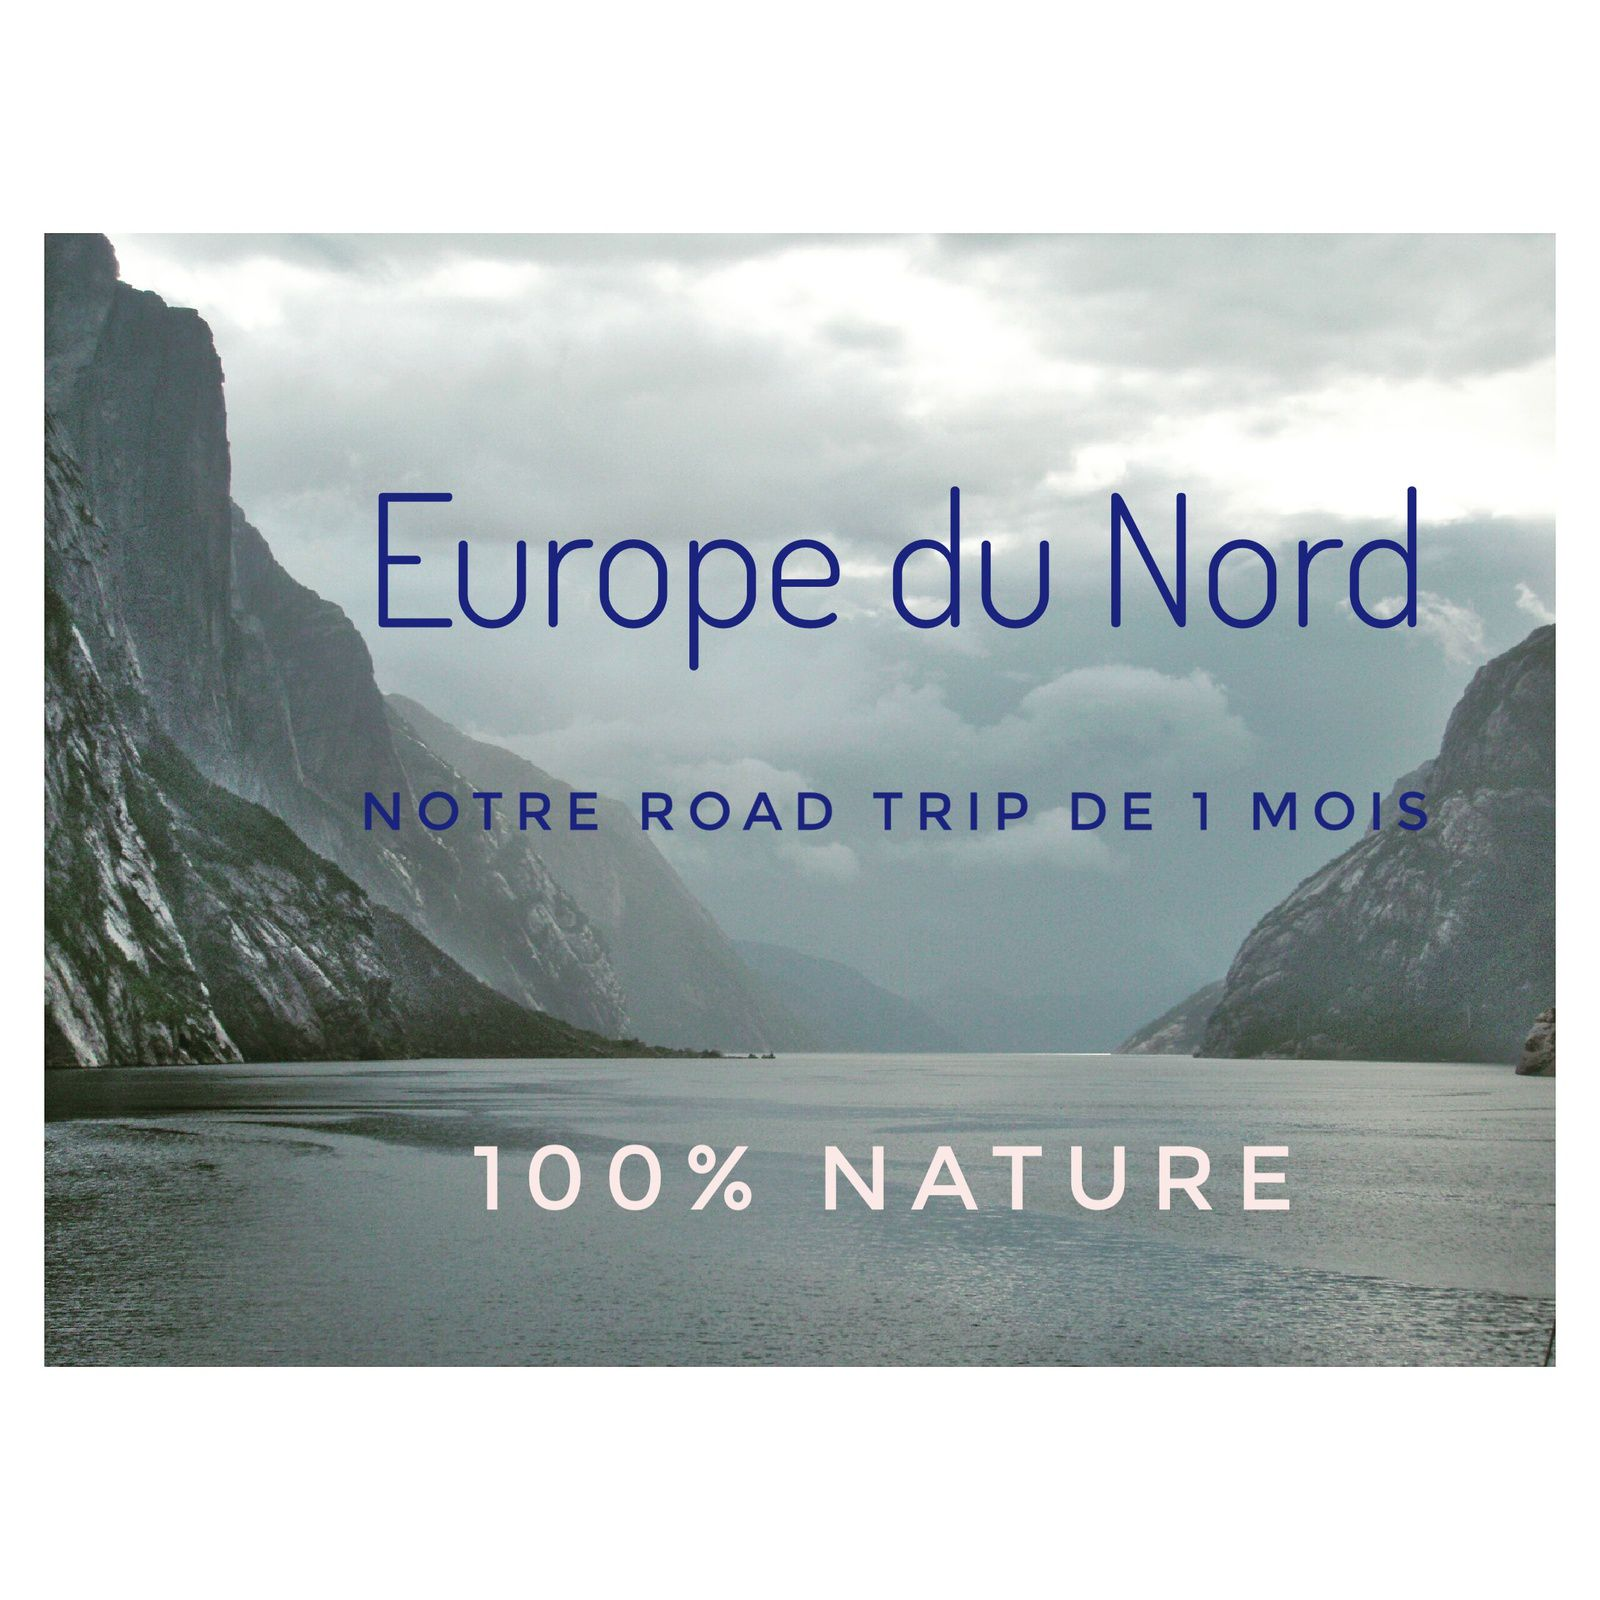 Europe du Nord road trip nature